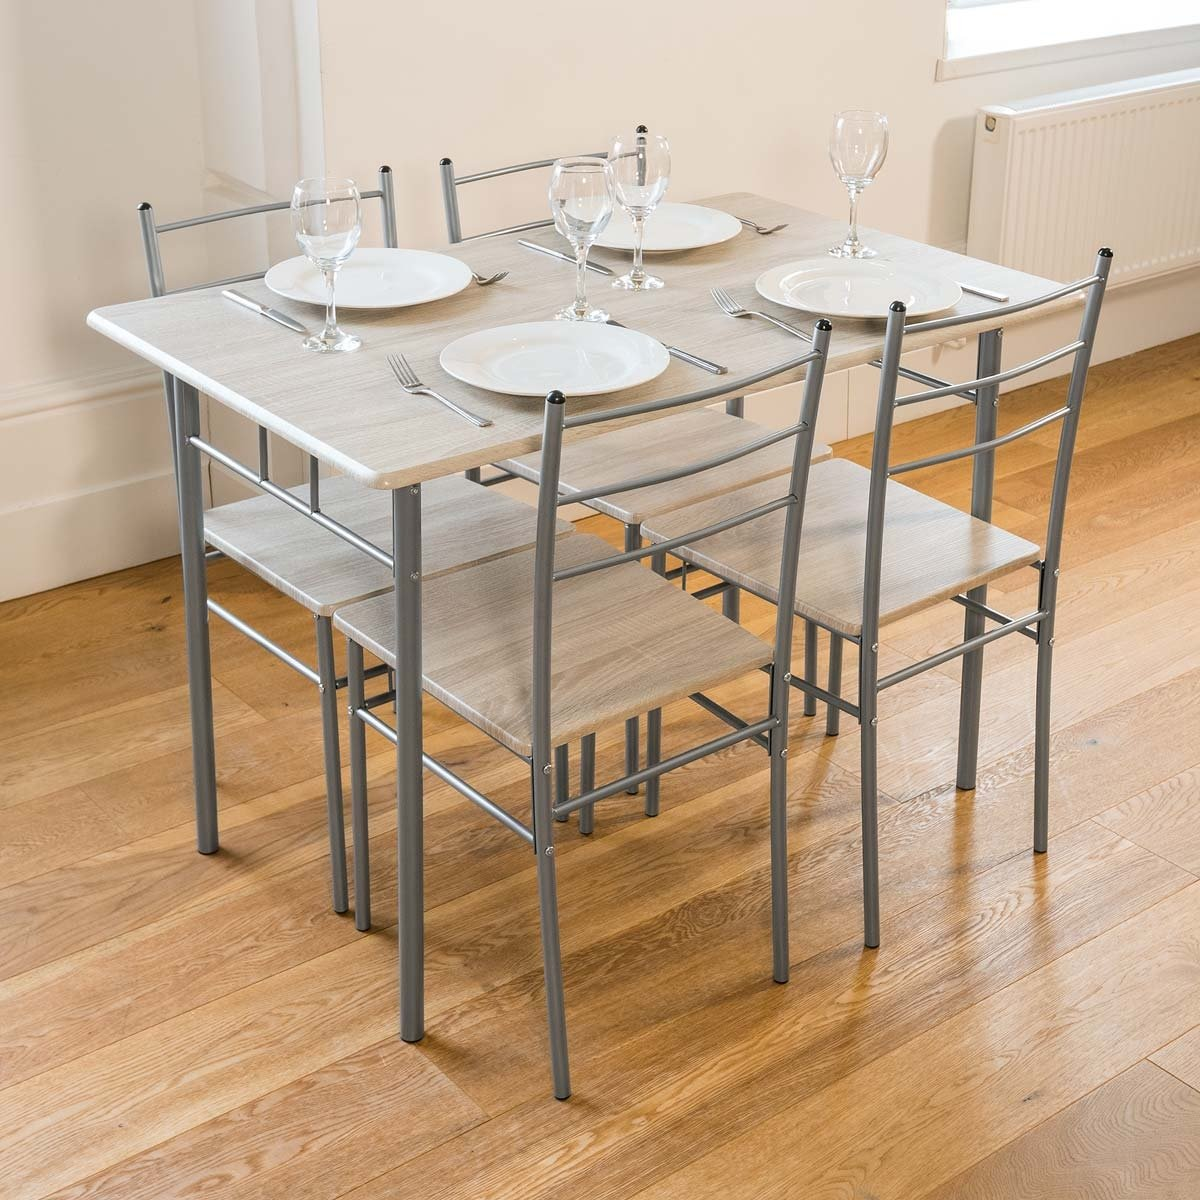 b150ecacb4a65 Cecilia 5 Piece Dinner Table and Chairs Set Quality Modern Dining   Amazon.co.uk  Kitchen   Home